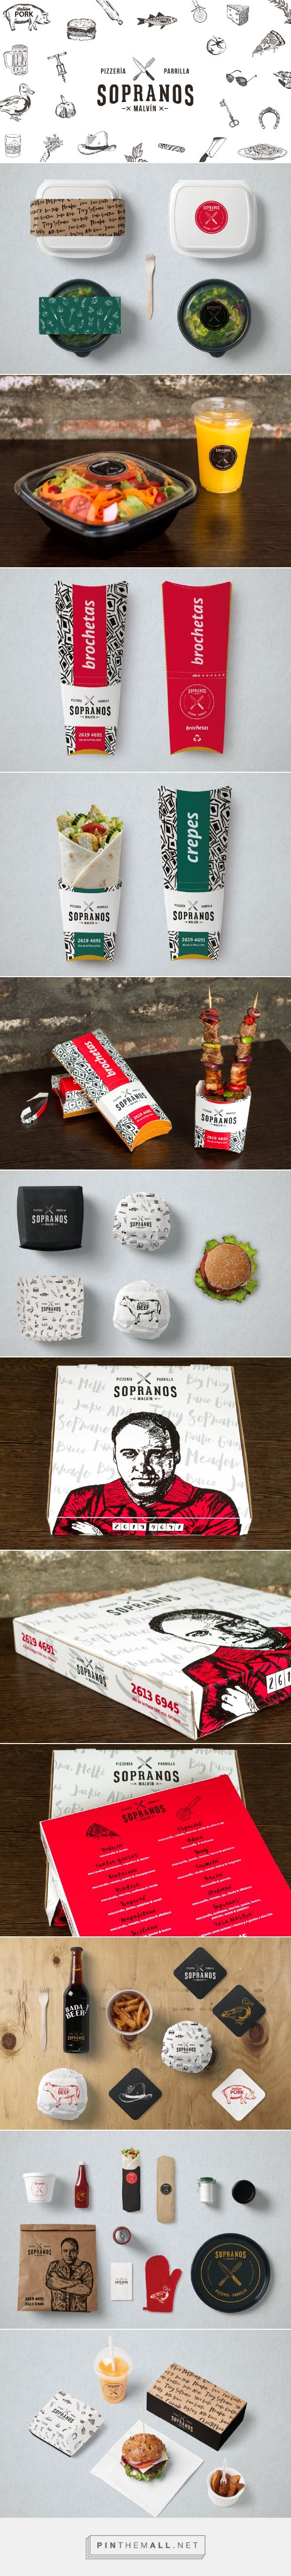 Sopranos Restaurant - Packaging of the World - Creative Package Design Gallery - http://www.packagingoftheworld.com/2016/07/sopranos-restaurant.html